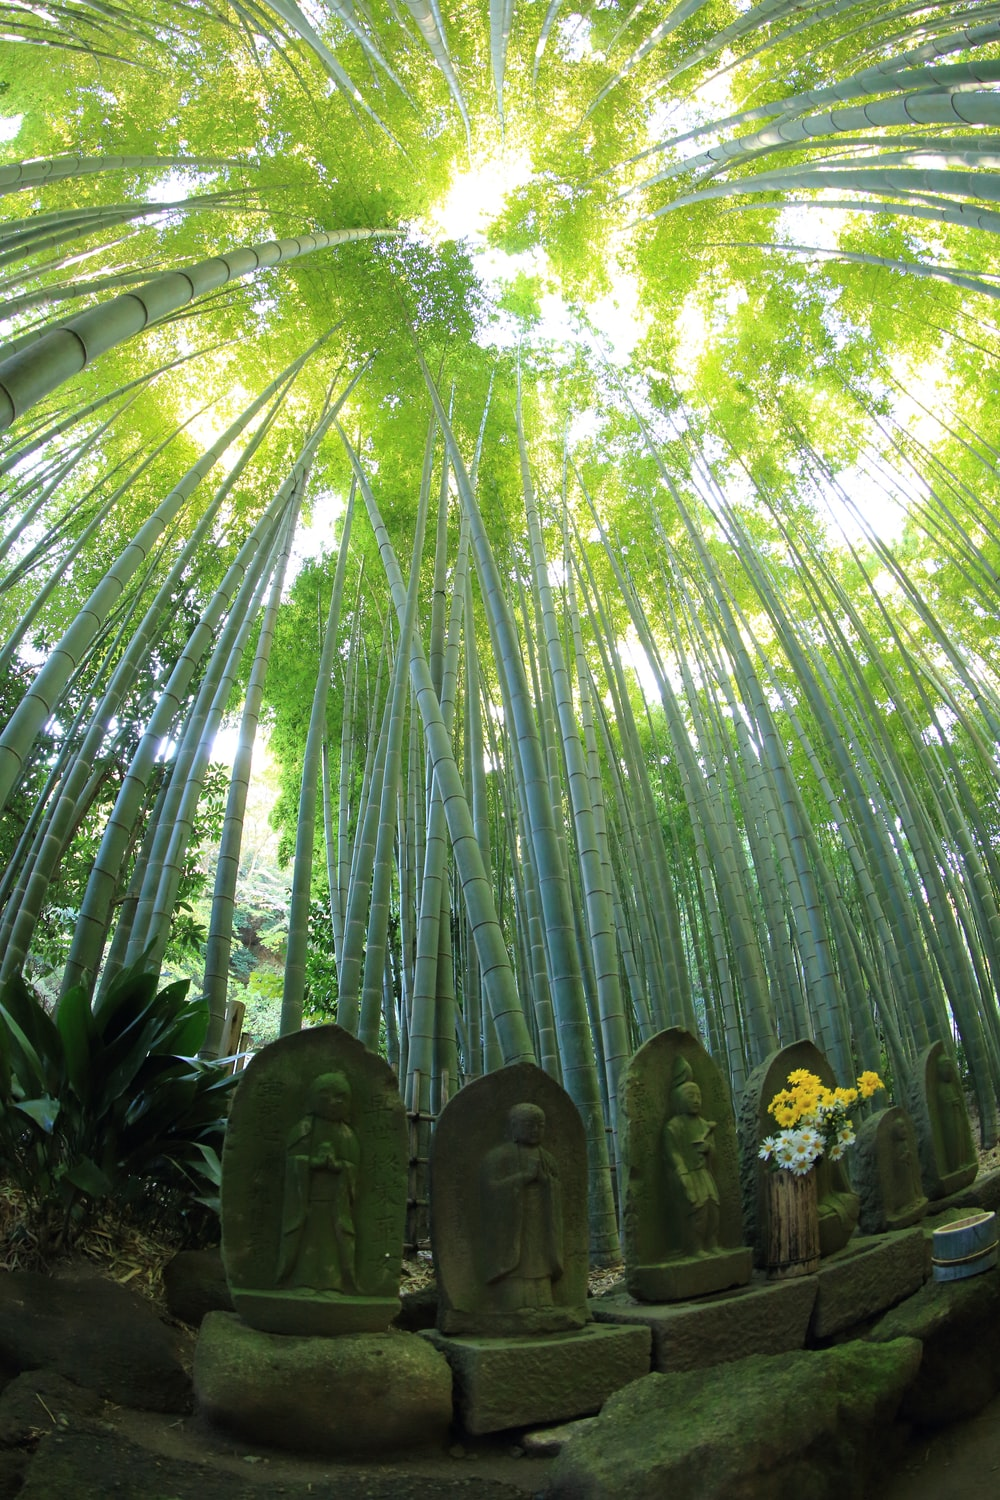 statues under bamboo trees